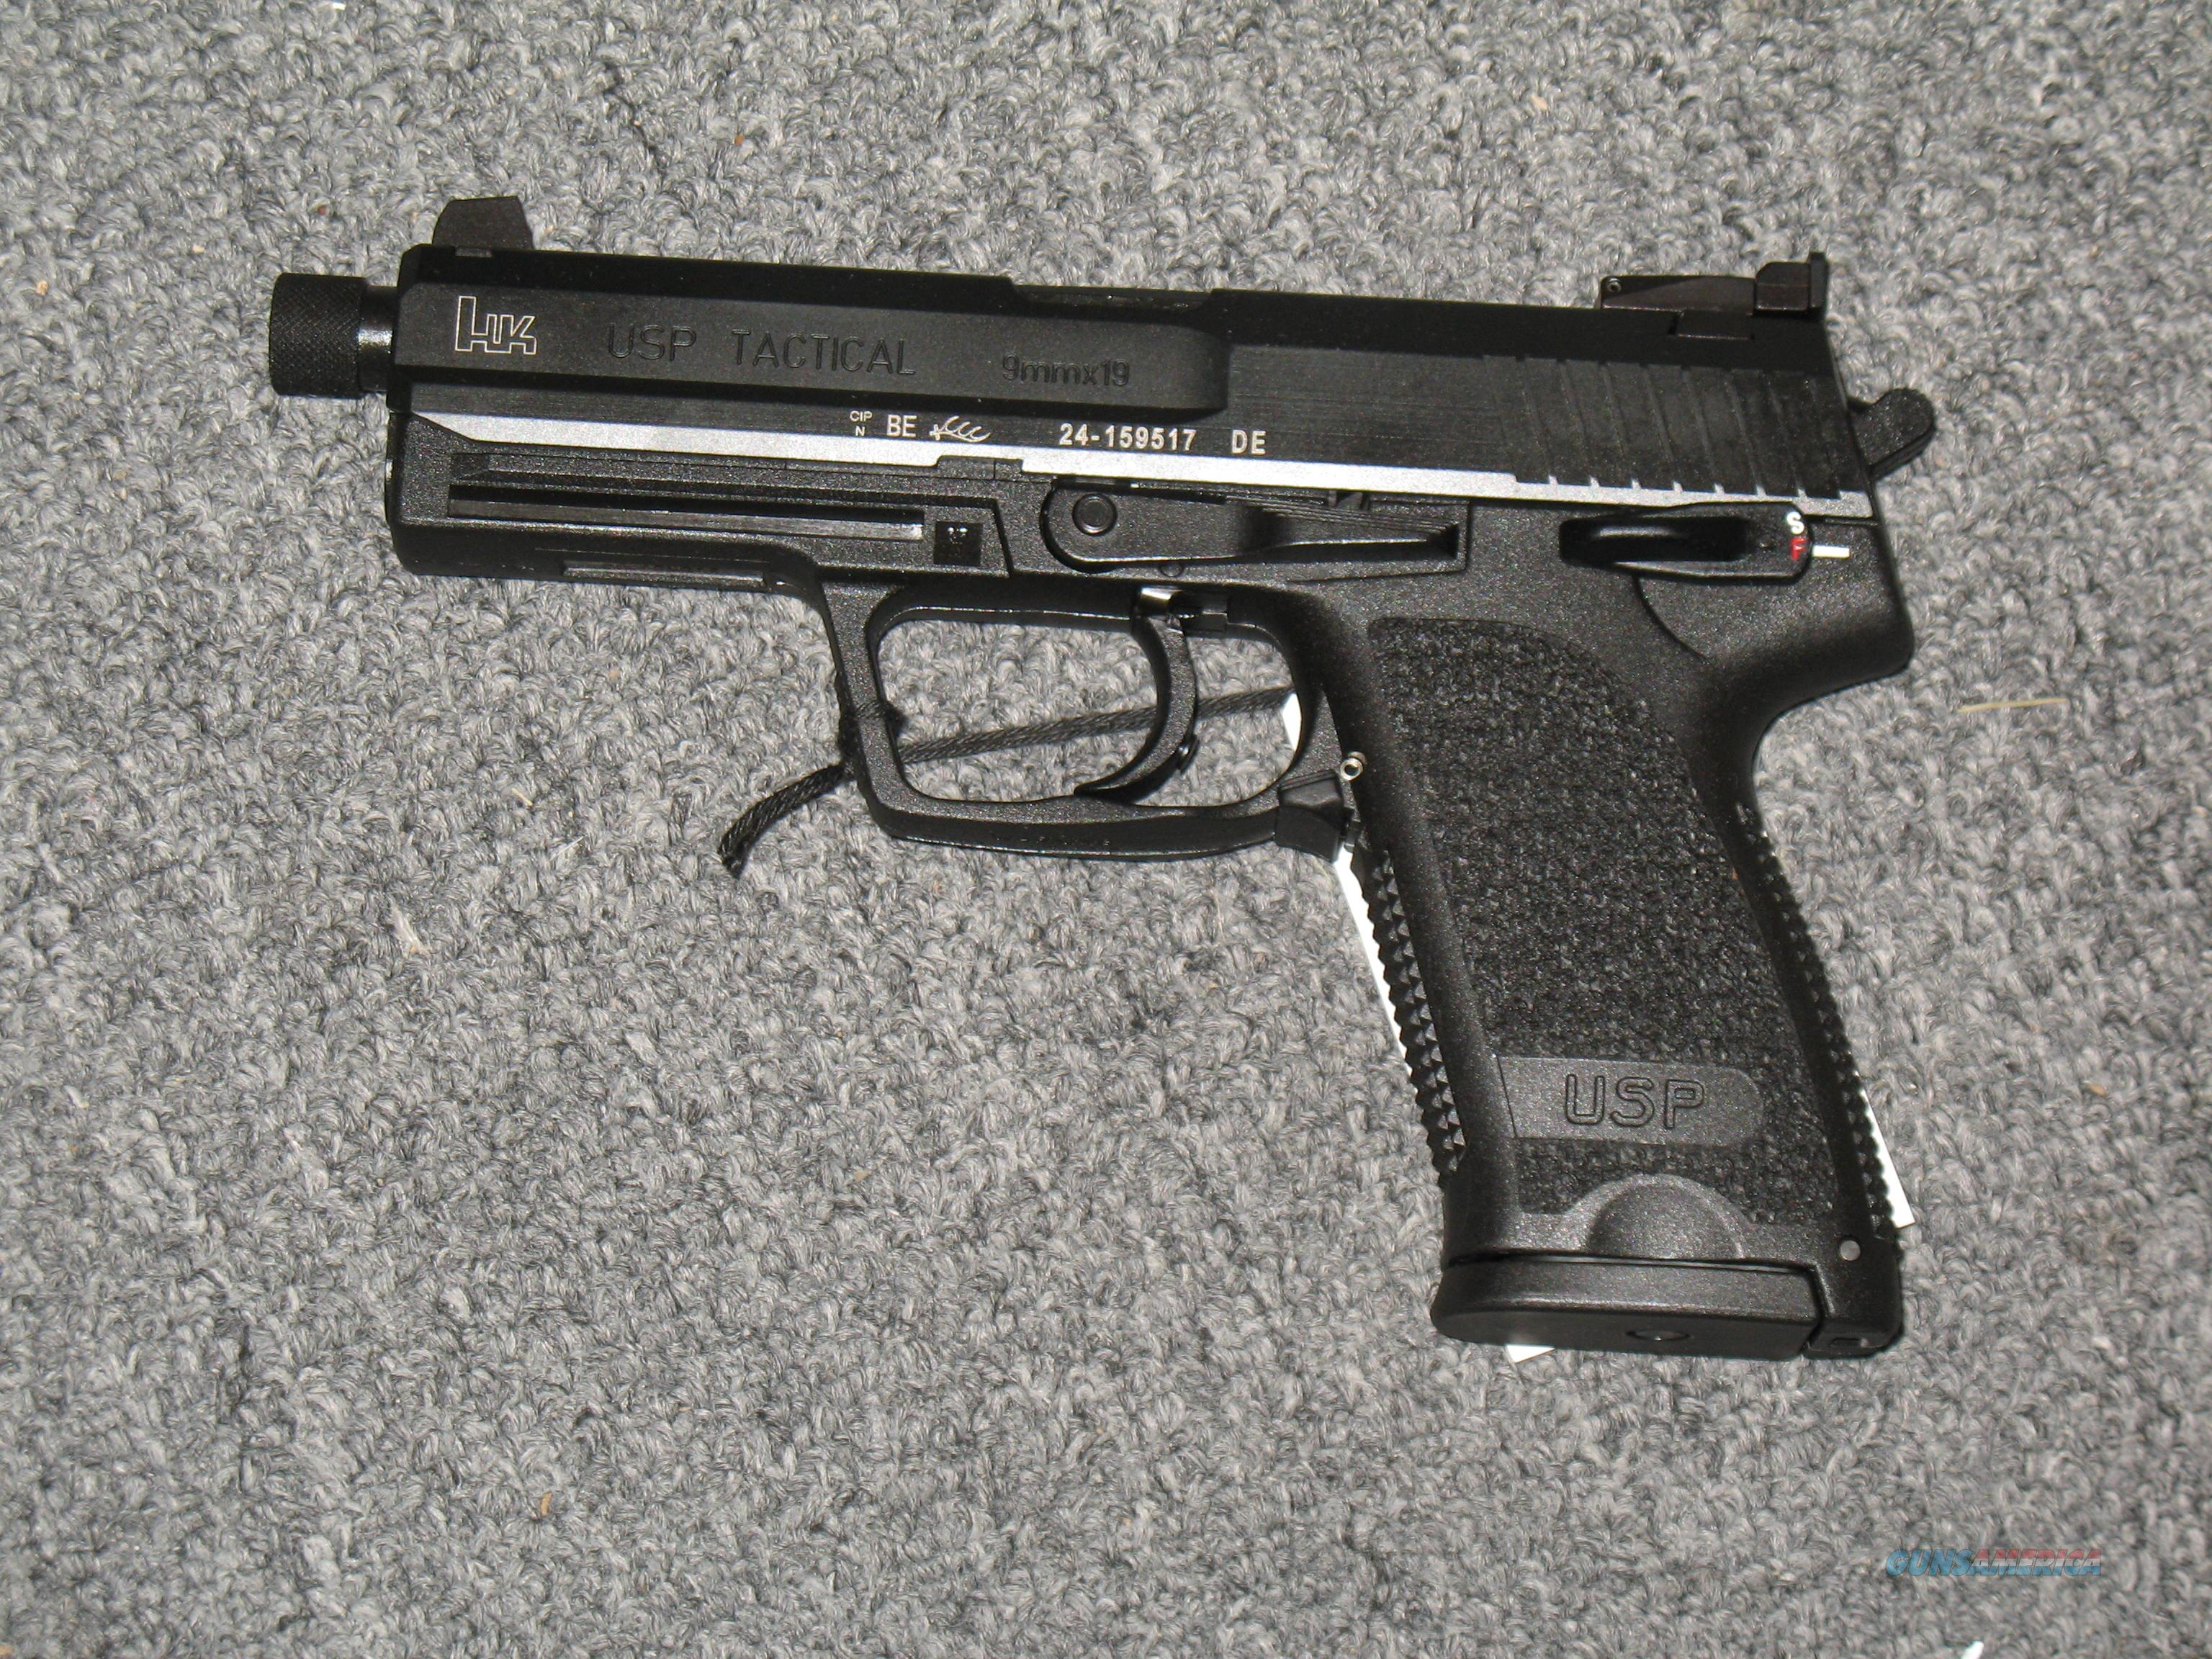 USP 9 Tactical w/threaded bbl.  Guns > Pistols > Heckler & Koch Pistols > Polymer Frame